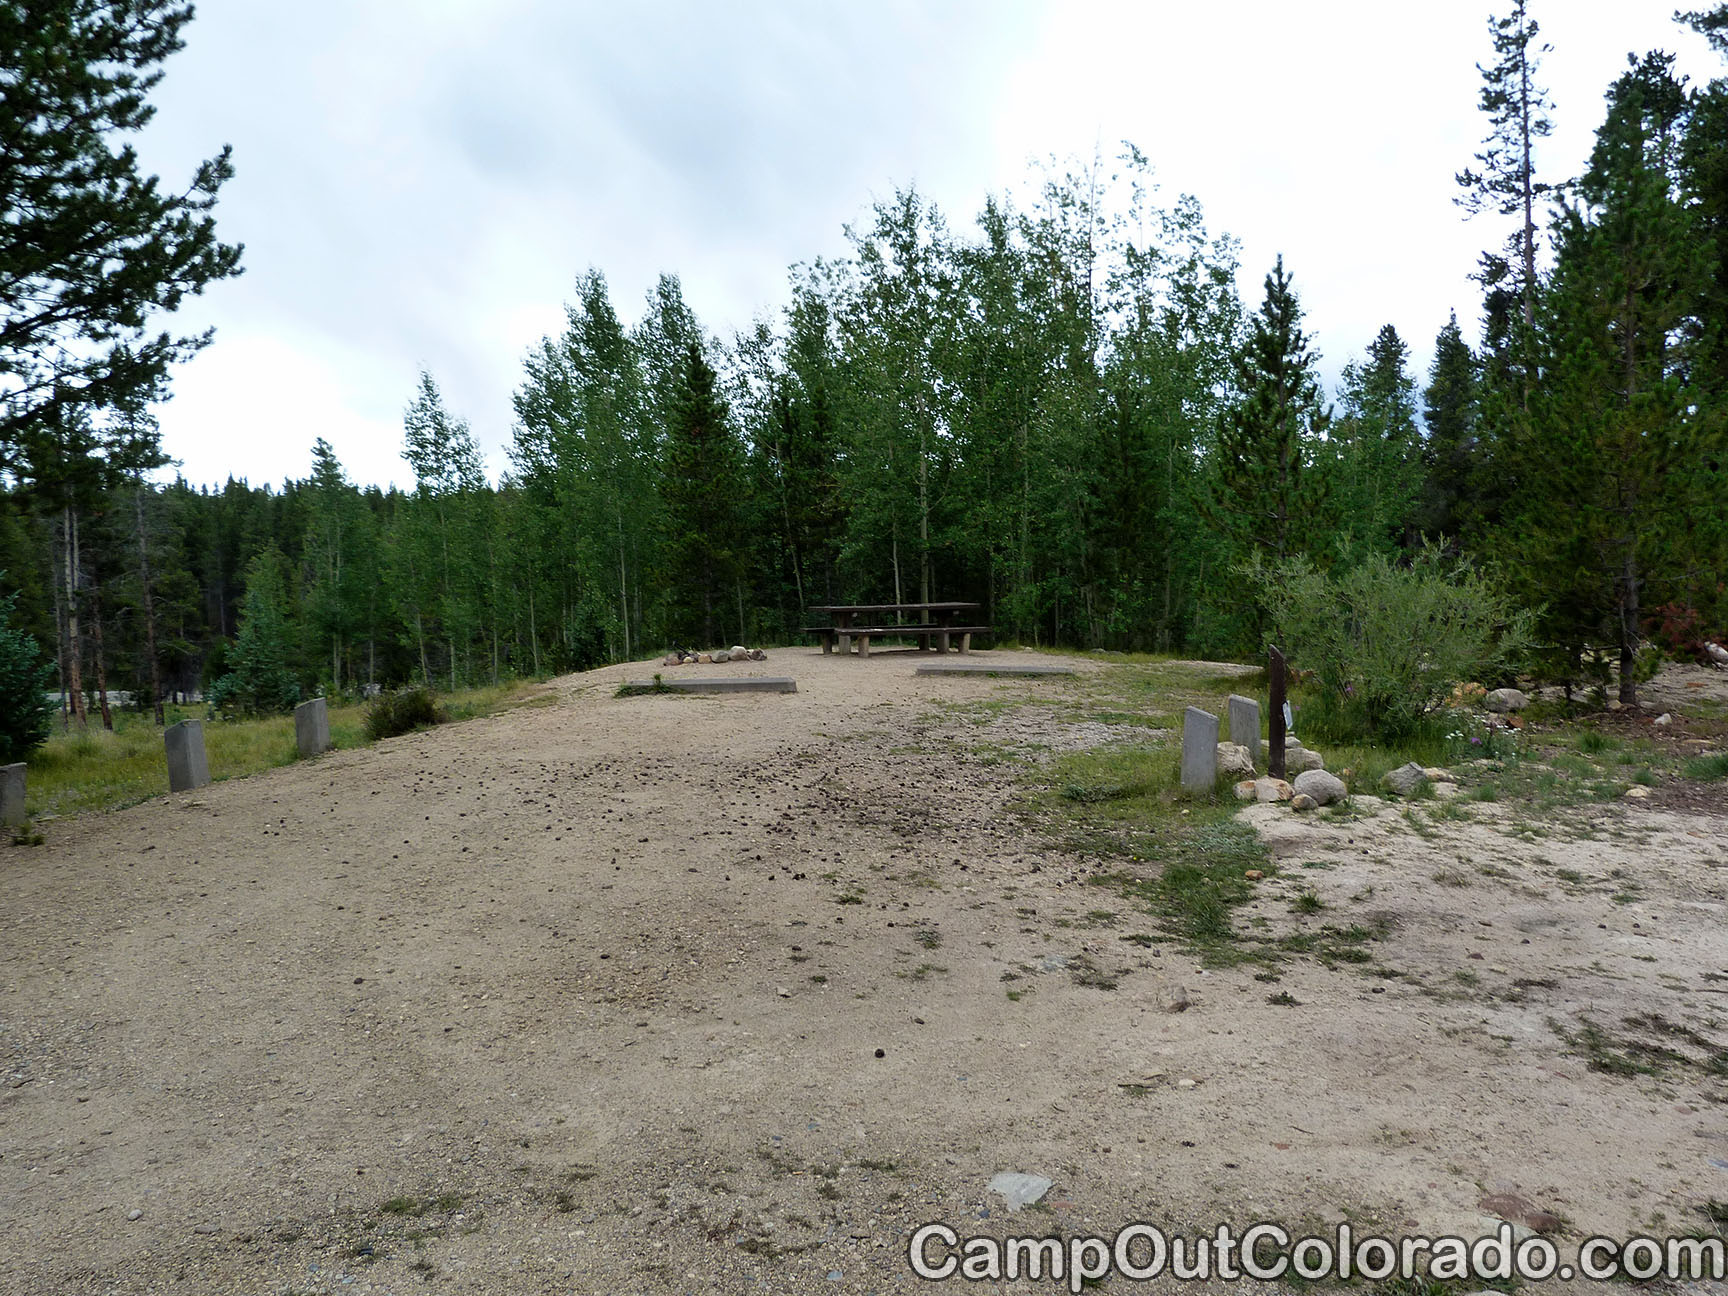 Camp-out-colorado-molly-brown-turquoise-lake-no-shade